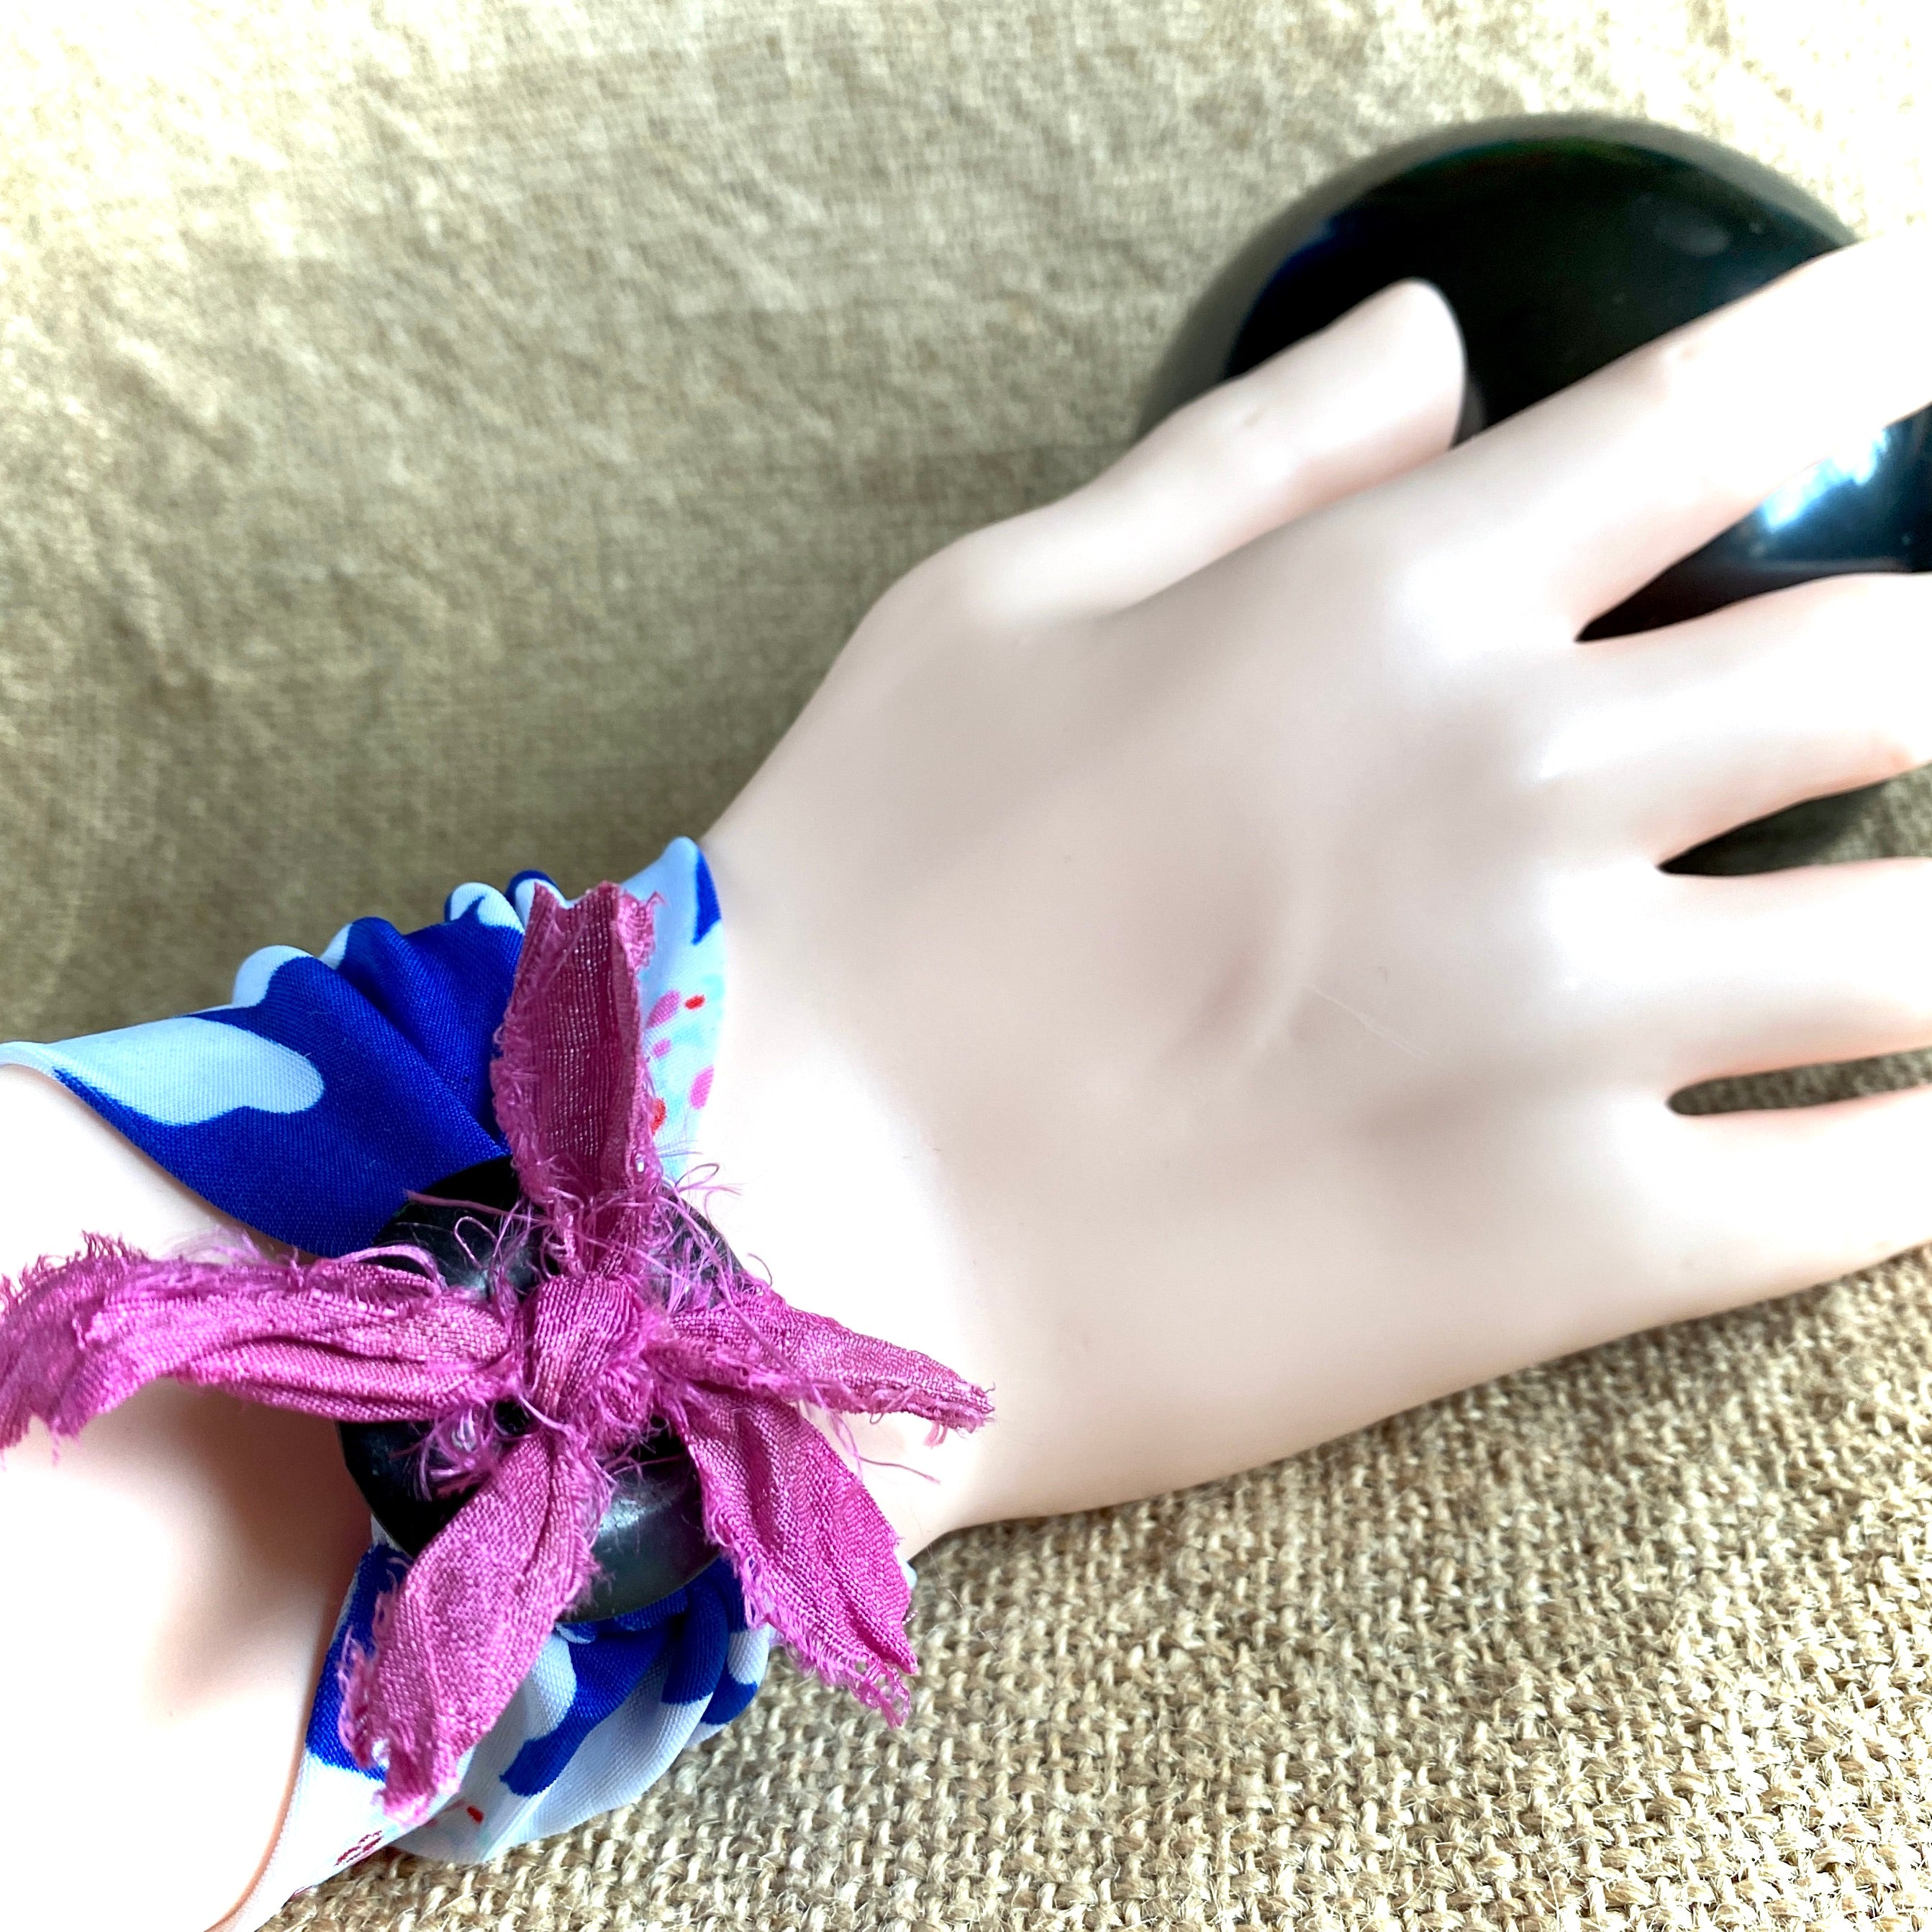 Blue & White Floral Wrist Band, Shungite, Pink Fabric Ties, Tattoo Cover - Shungite Queen